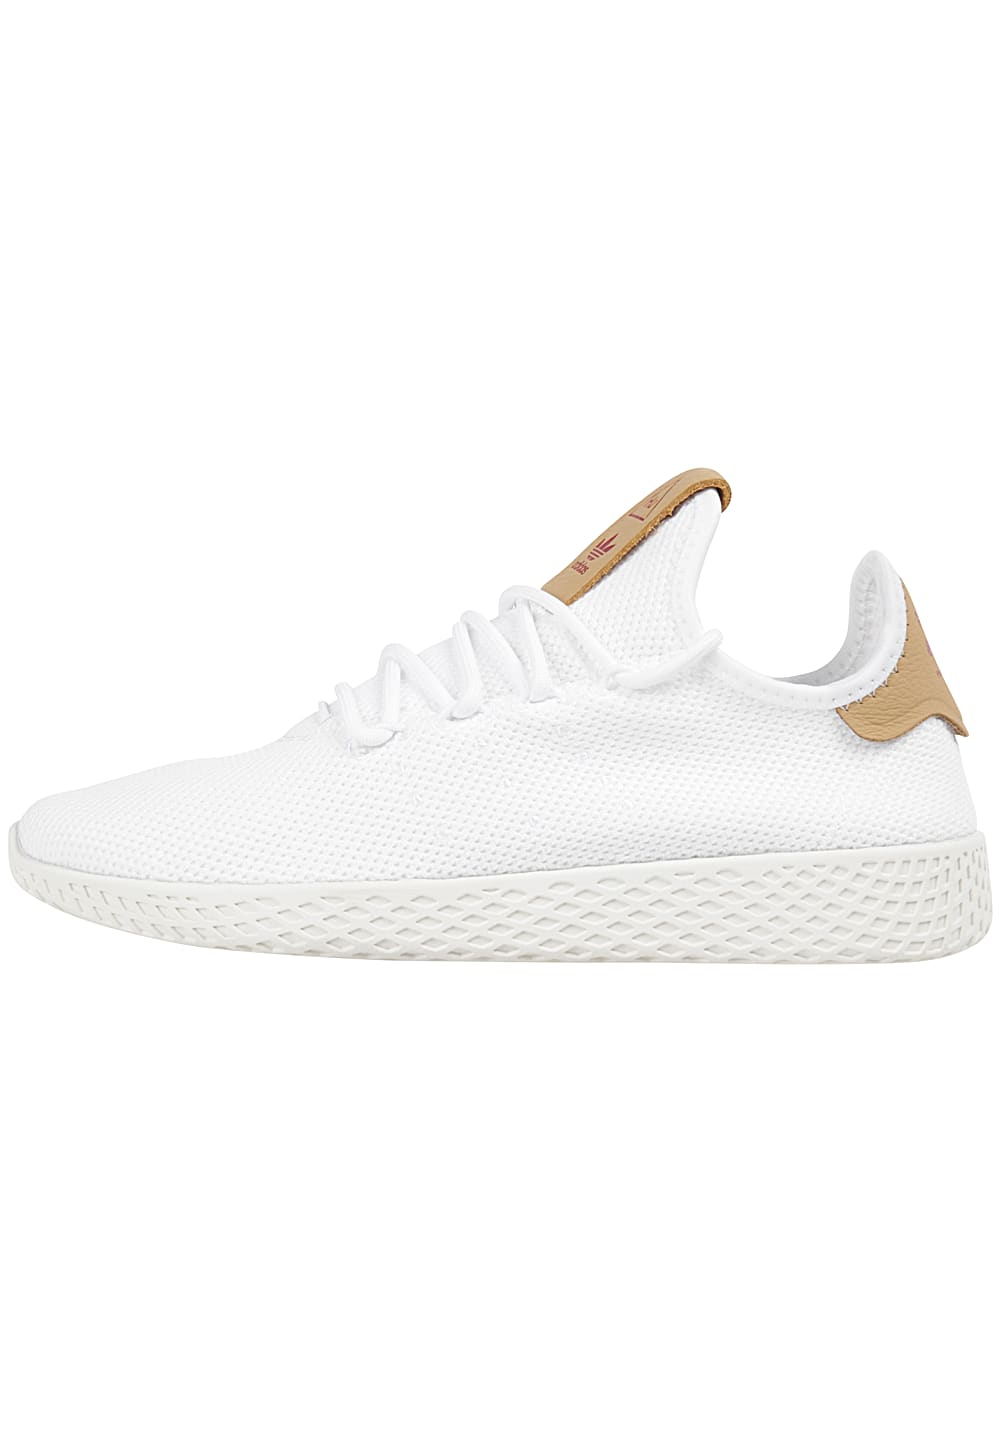 adidas Originals Pharrell Williams Tennis HU Sneaker für Damen Weiß